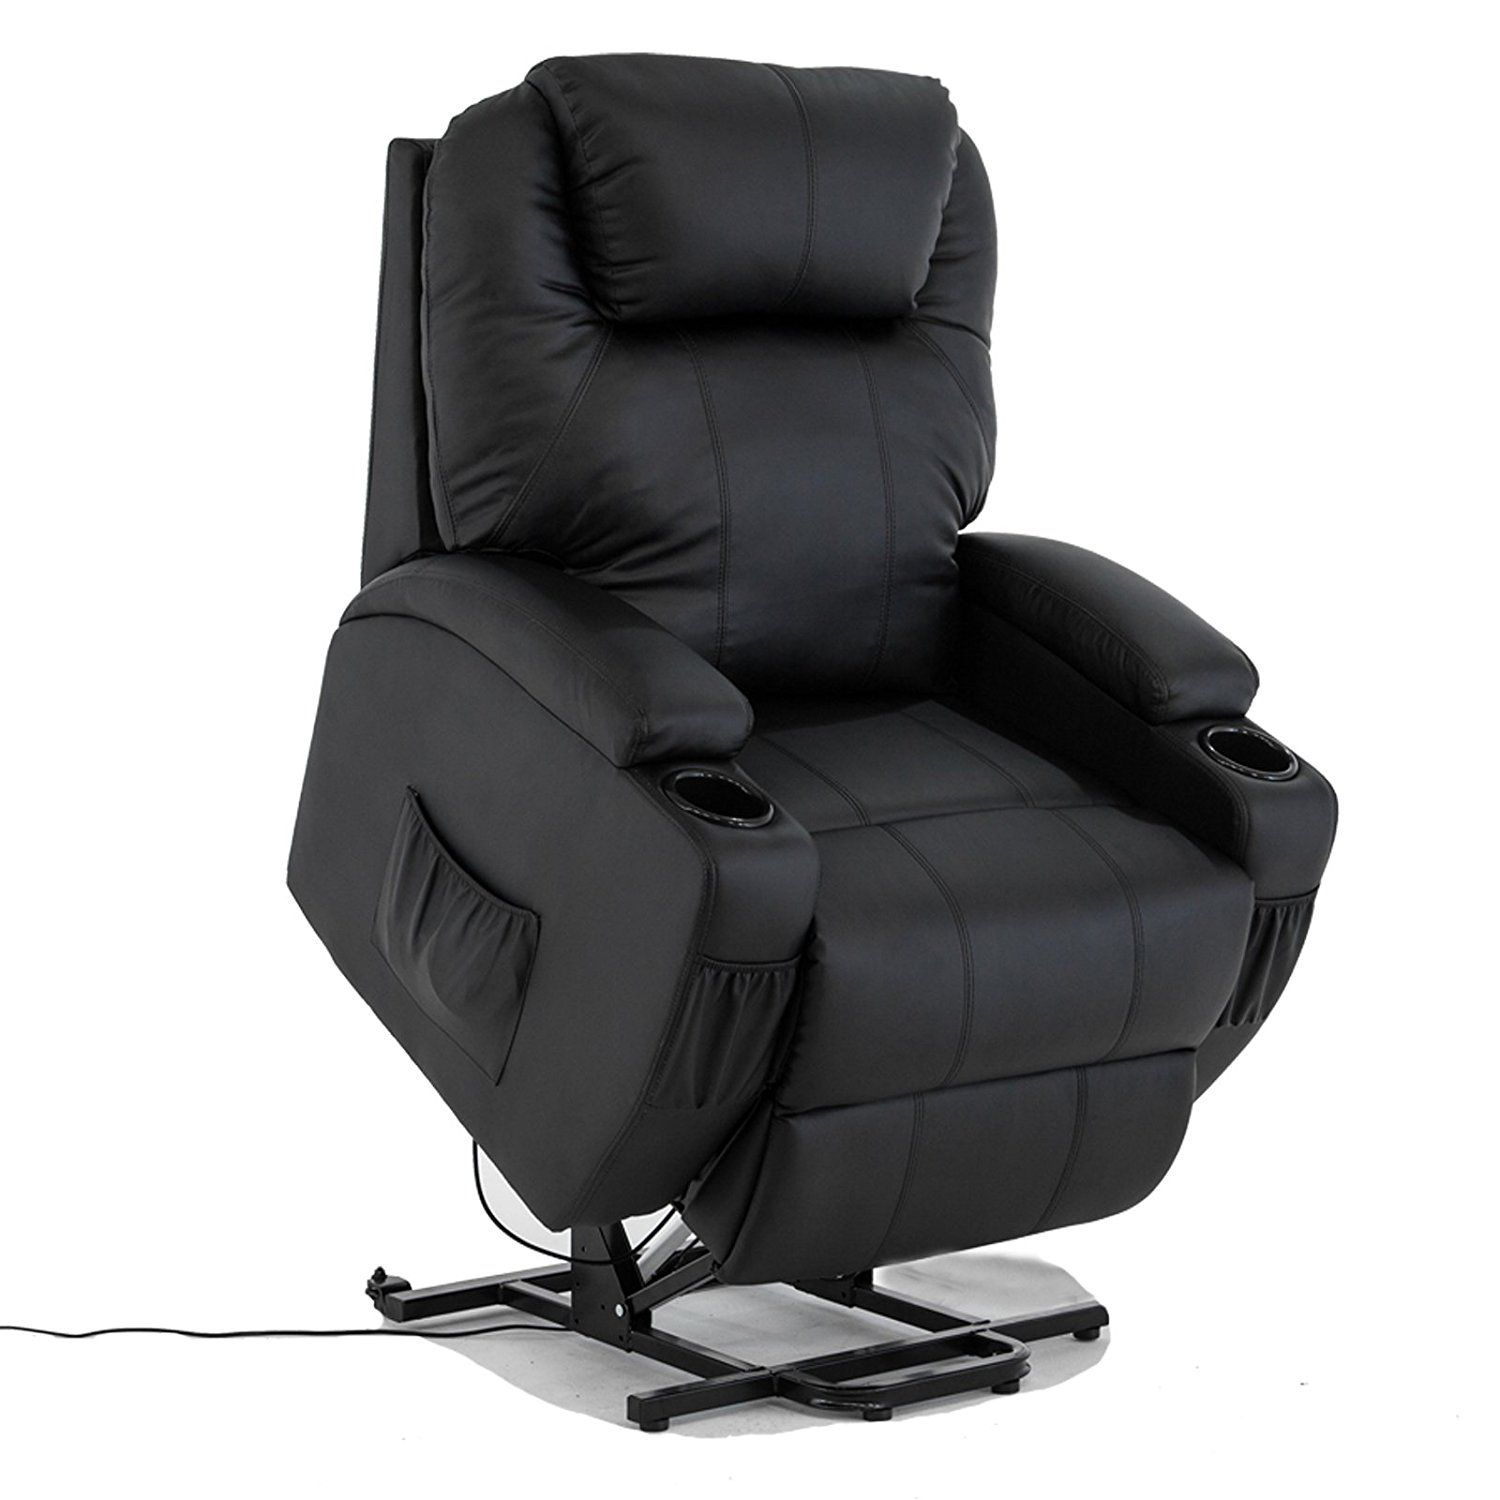 Recliner armchair for comfort and style Lift chair